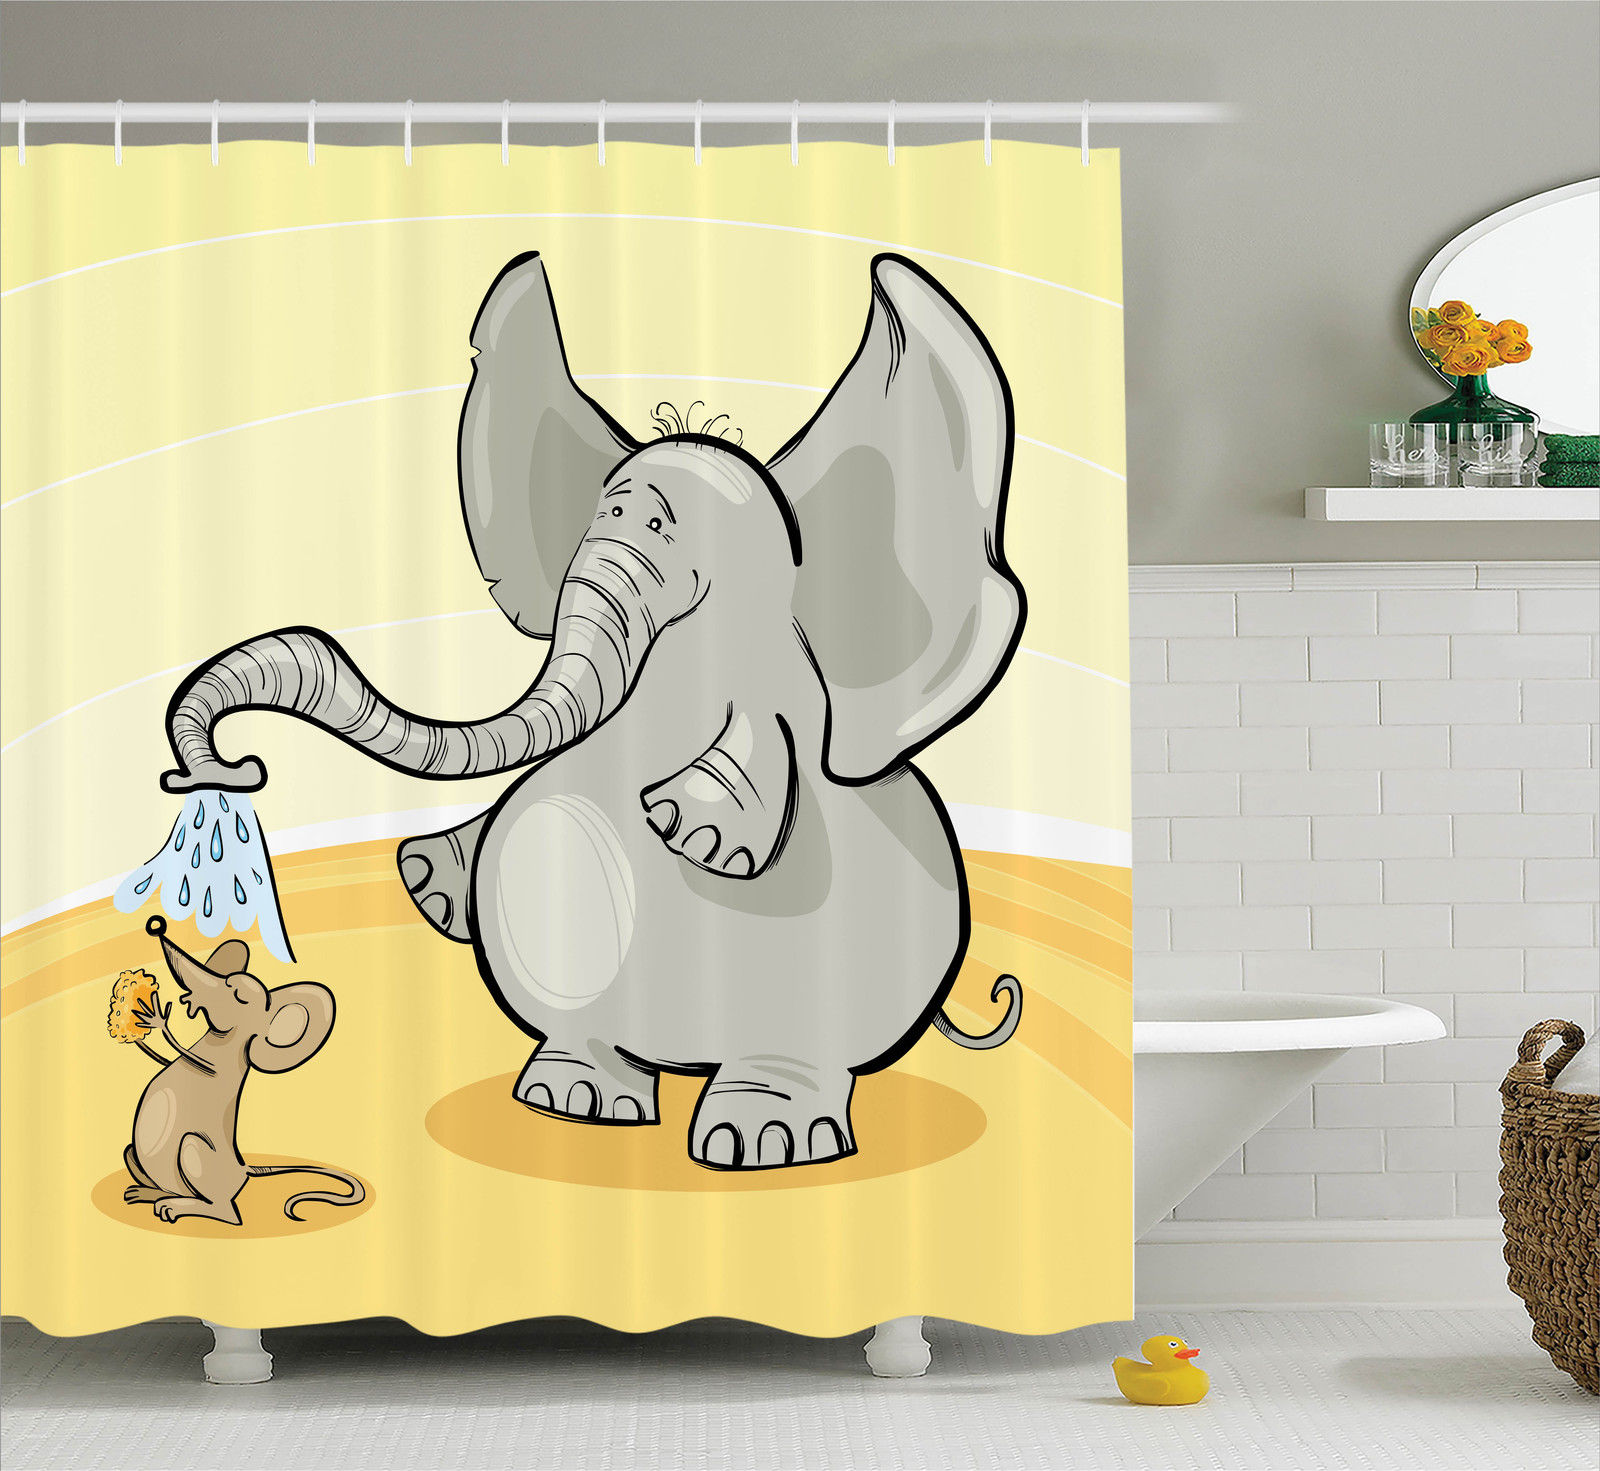 Elephants Decor  Elephant Bathing Mouse With Trunk In The Desert Cartoon Animal Print Kids Decor, Bathroom Accessories, 69W X 84L Inches Extra Long, By Ambesonne